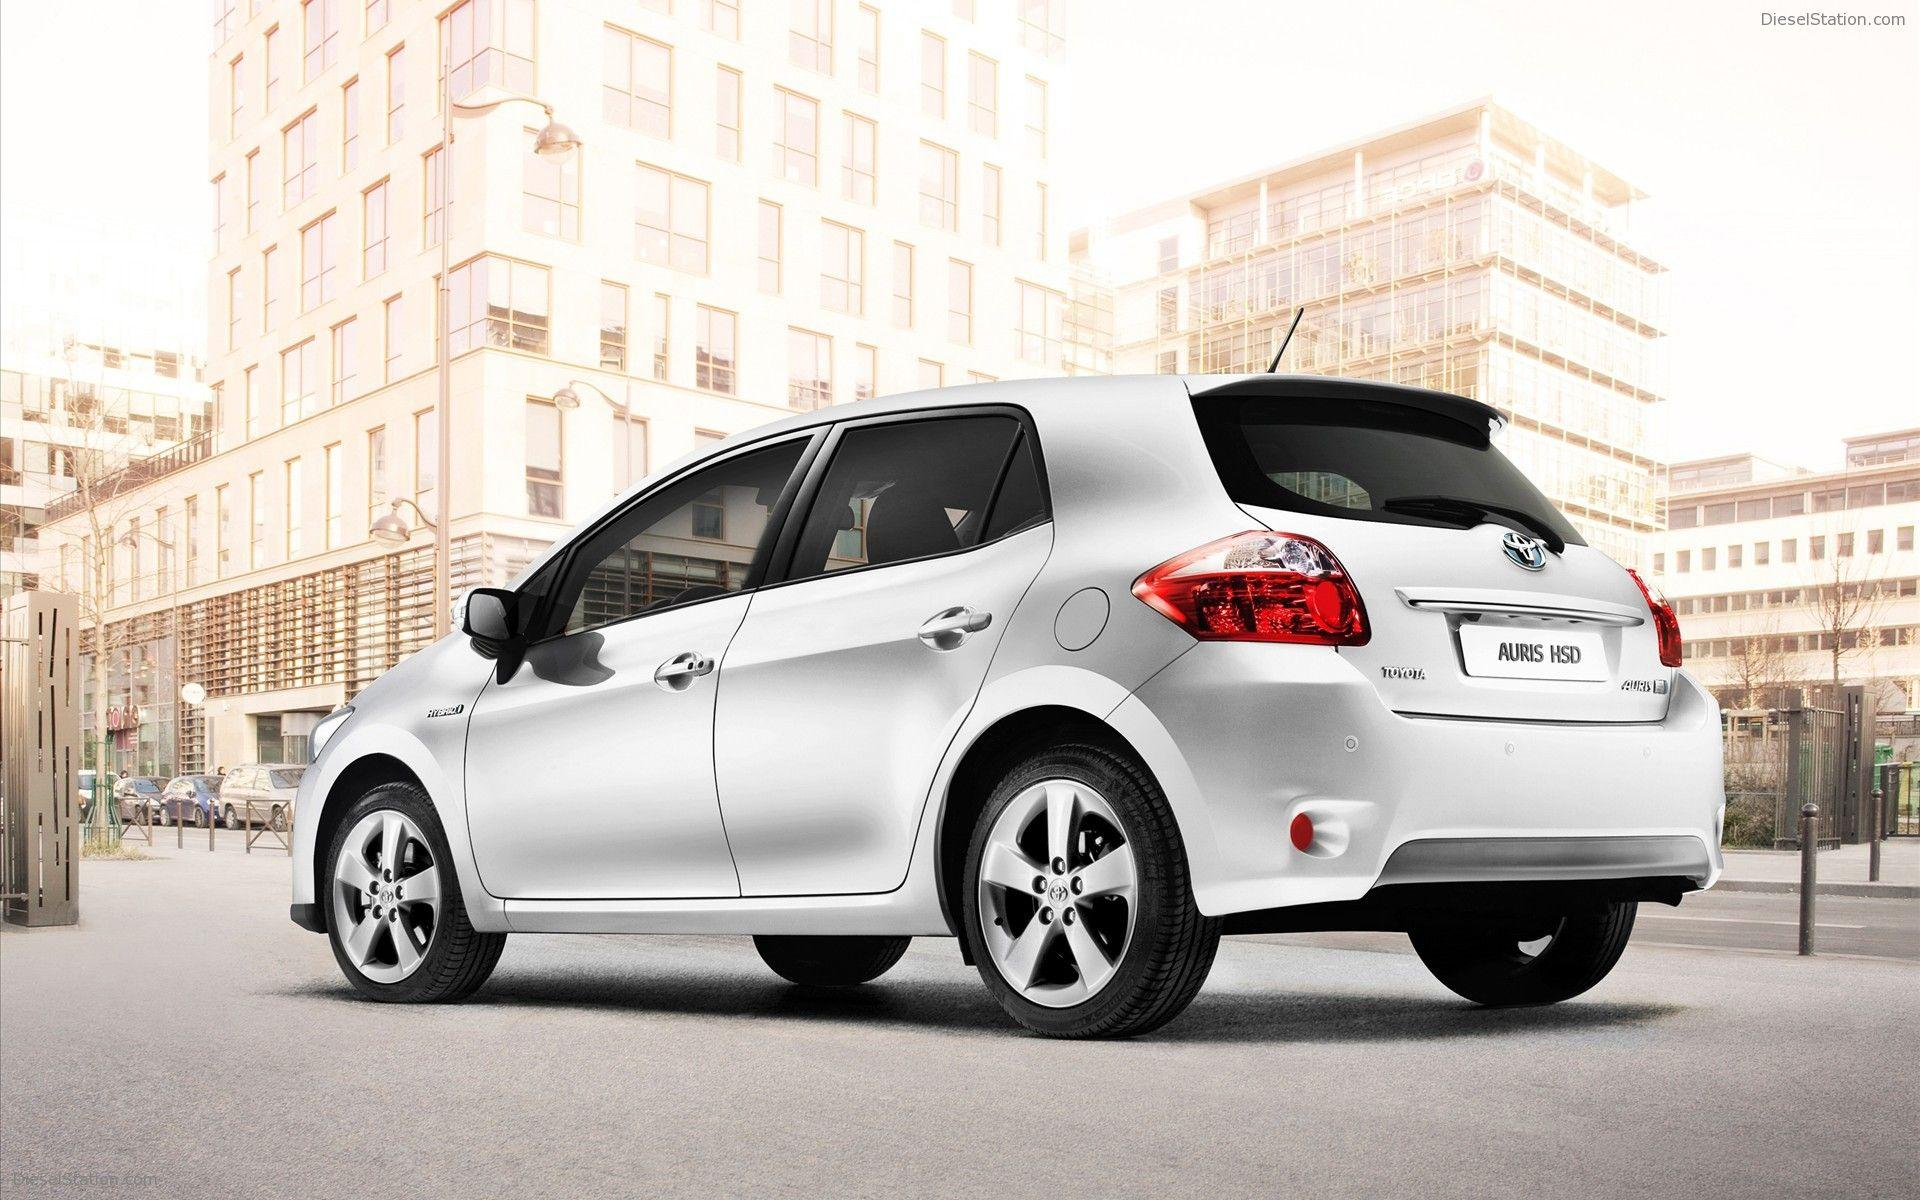 Toyota Auris HSD 2011 Widescreen Exotic Car Wallpapers of 22